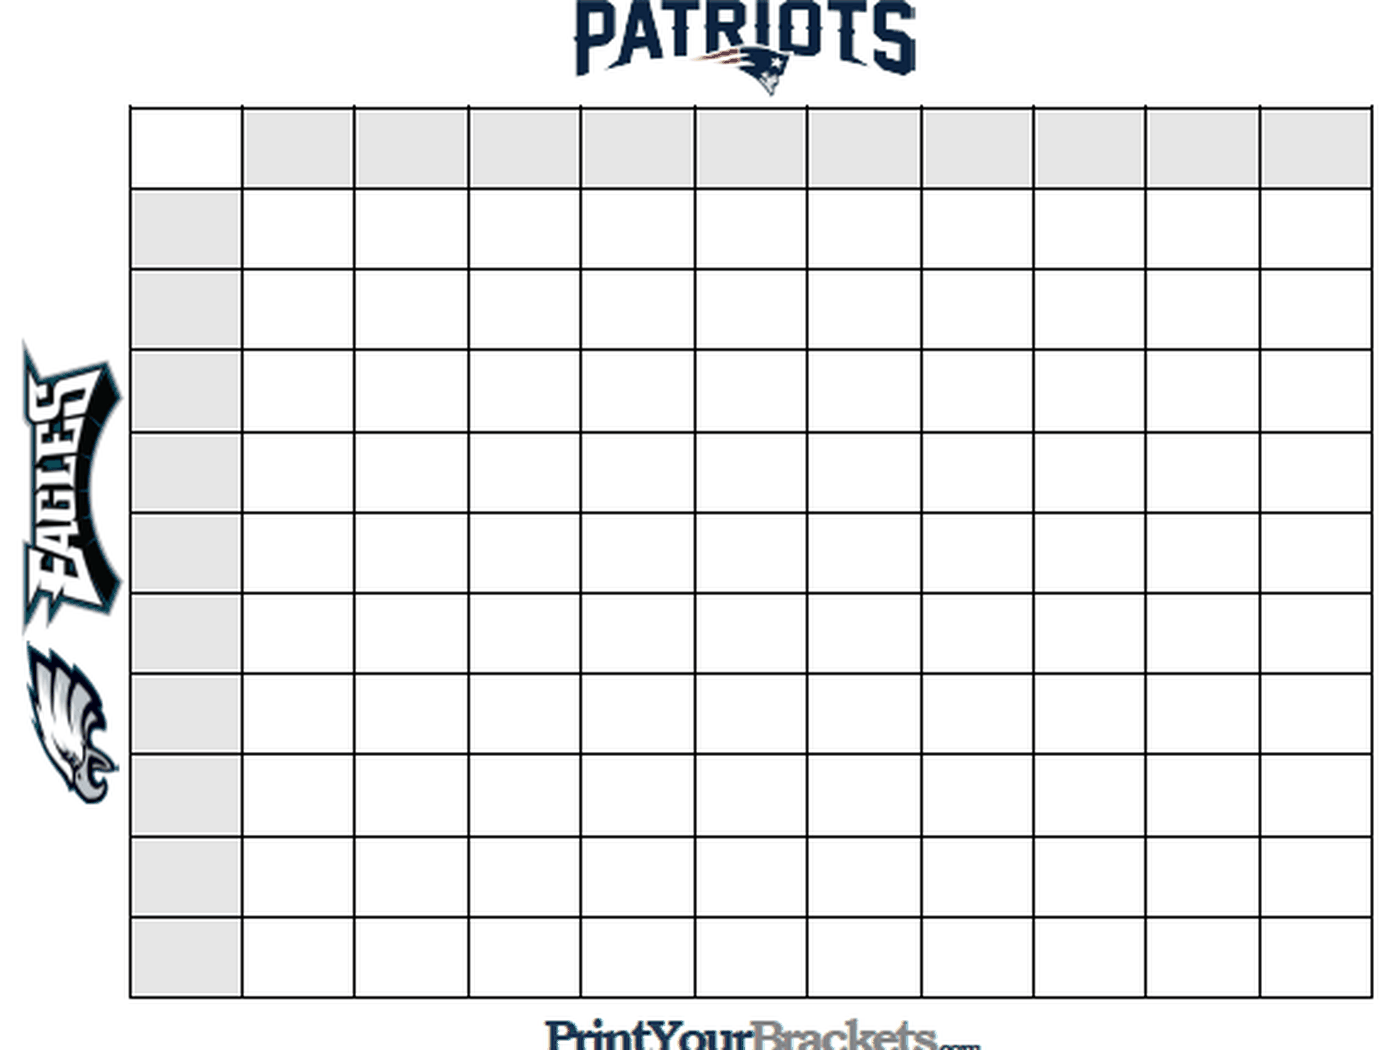 Super Bowl squares template: A playing guide for Patriots vs. Eagles - SBNation.com